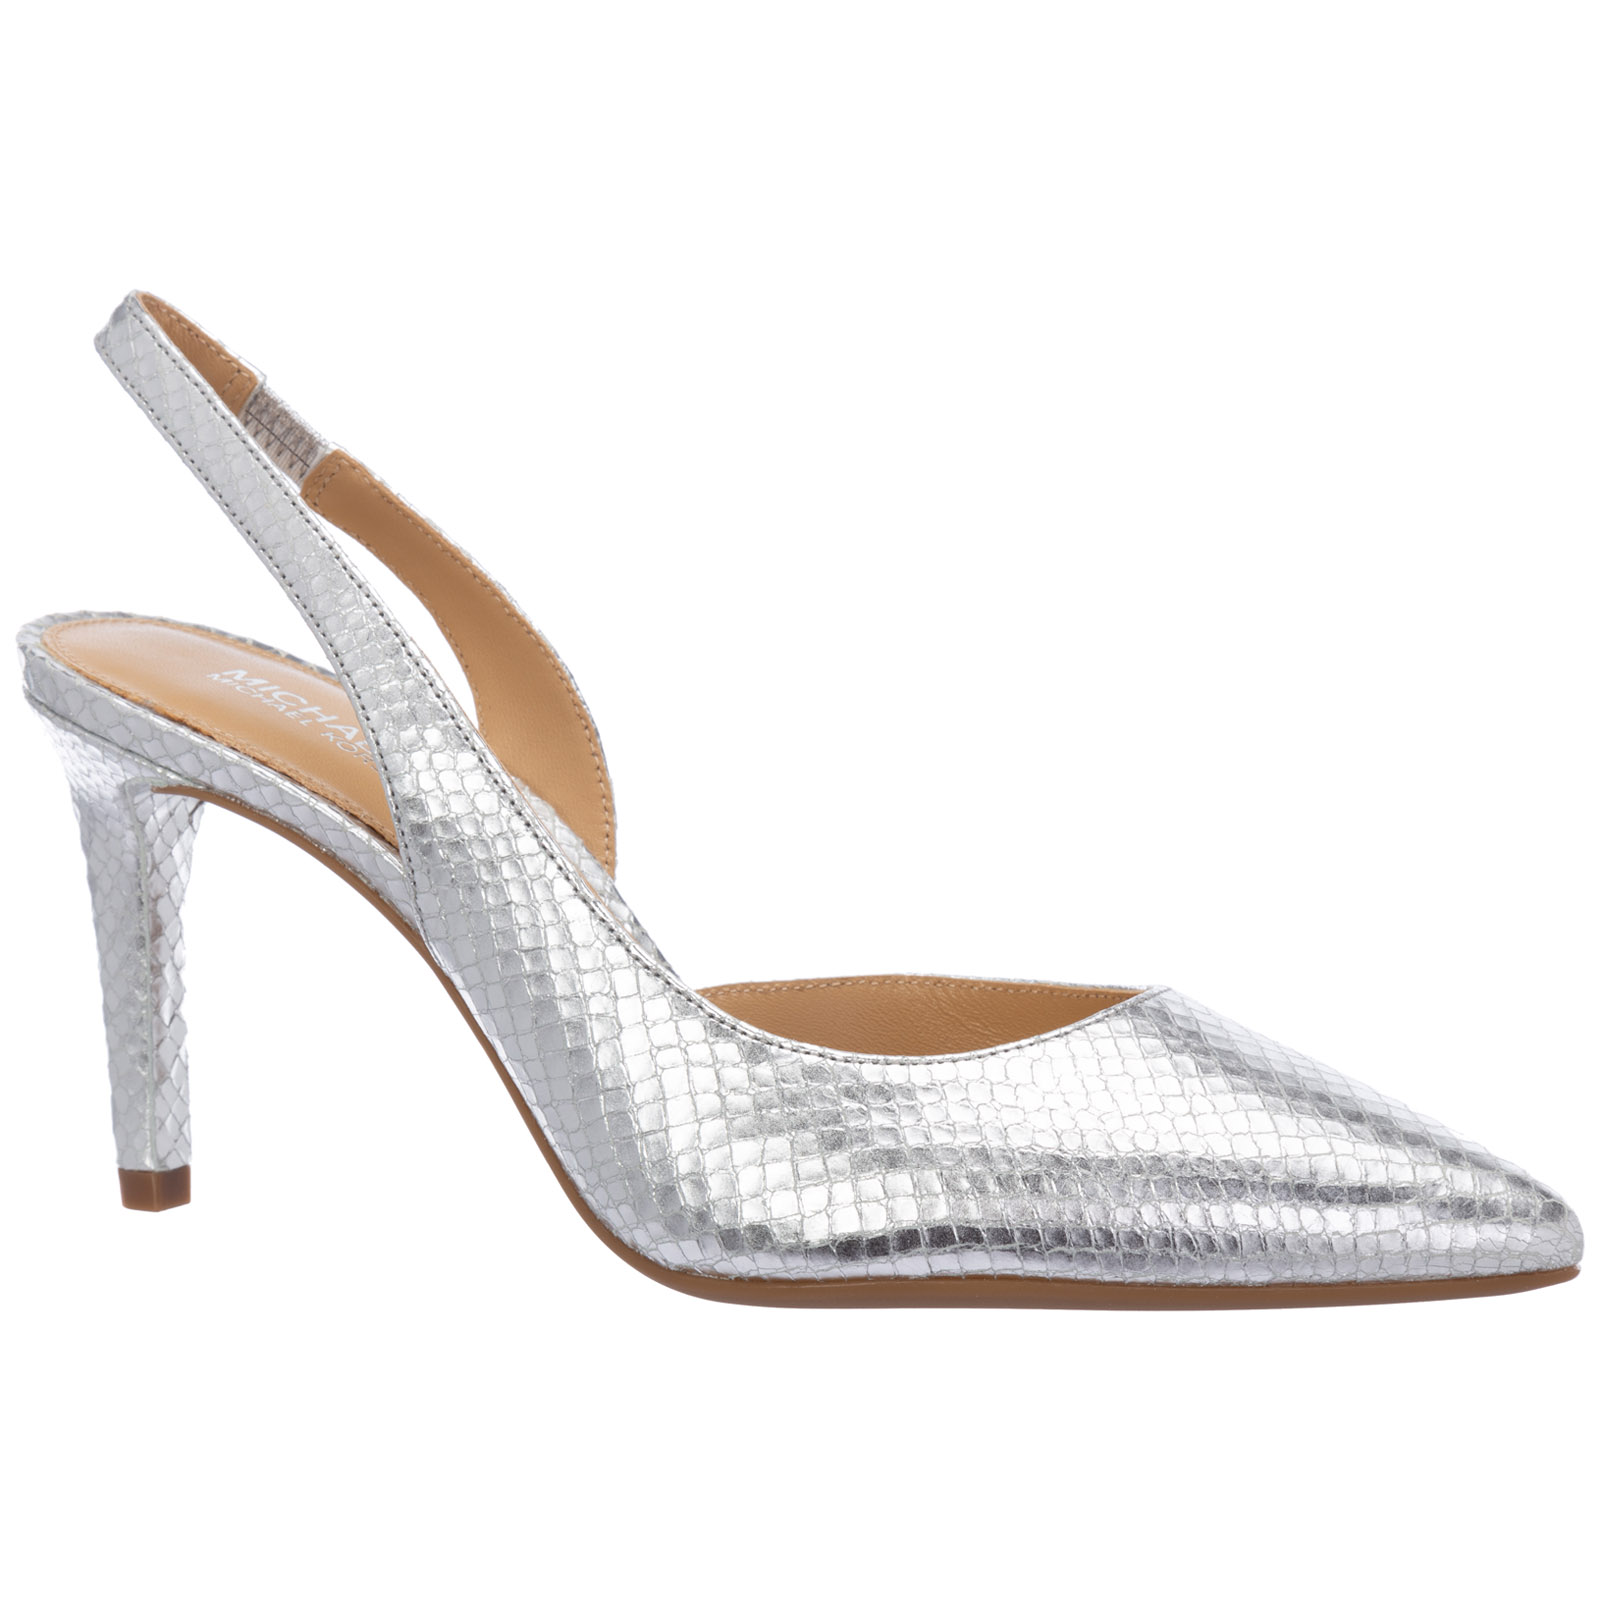 Women's leather pumps court shoes high heel lucille